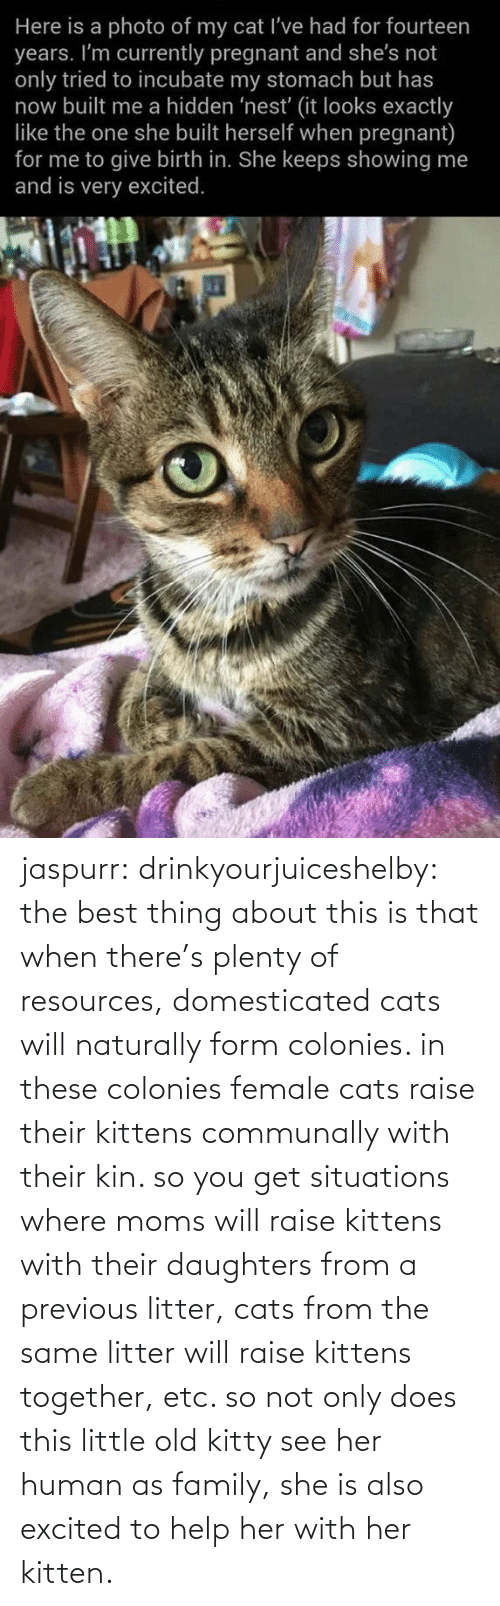 From: jaspurr:  drinkyourjuiceshelby:    the best thing about this is that when there's plenty of resources, domesticated cats will naturally form colonies. in these colonies female cats raise their kittens communally with their kin. so you get situations where moms will raise kittens with their daughters from a previous litter, cats from the same litter will raise kittens together, etc. so not only does this little old kitty see her human as family, she is also excited to help her with her kitten.